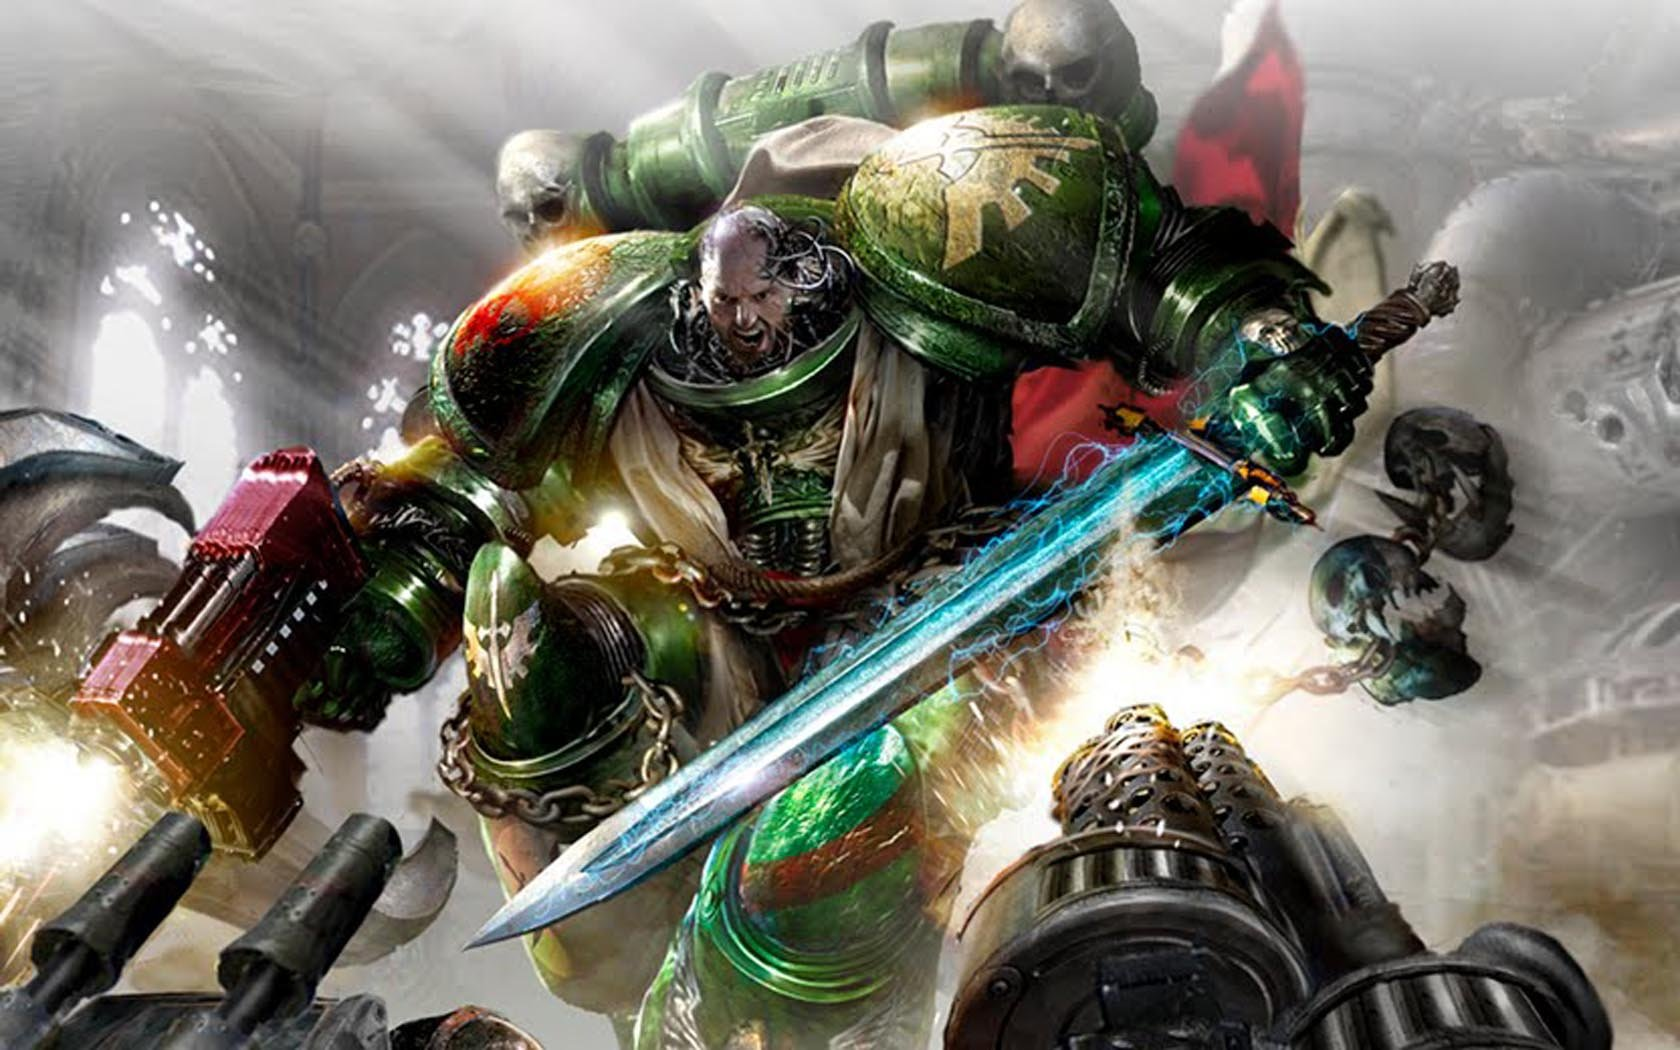 warhammer 40k wallpaper 1680x1050 - photo #14